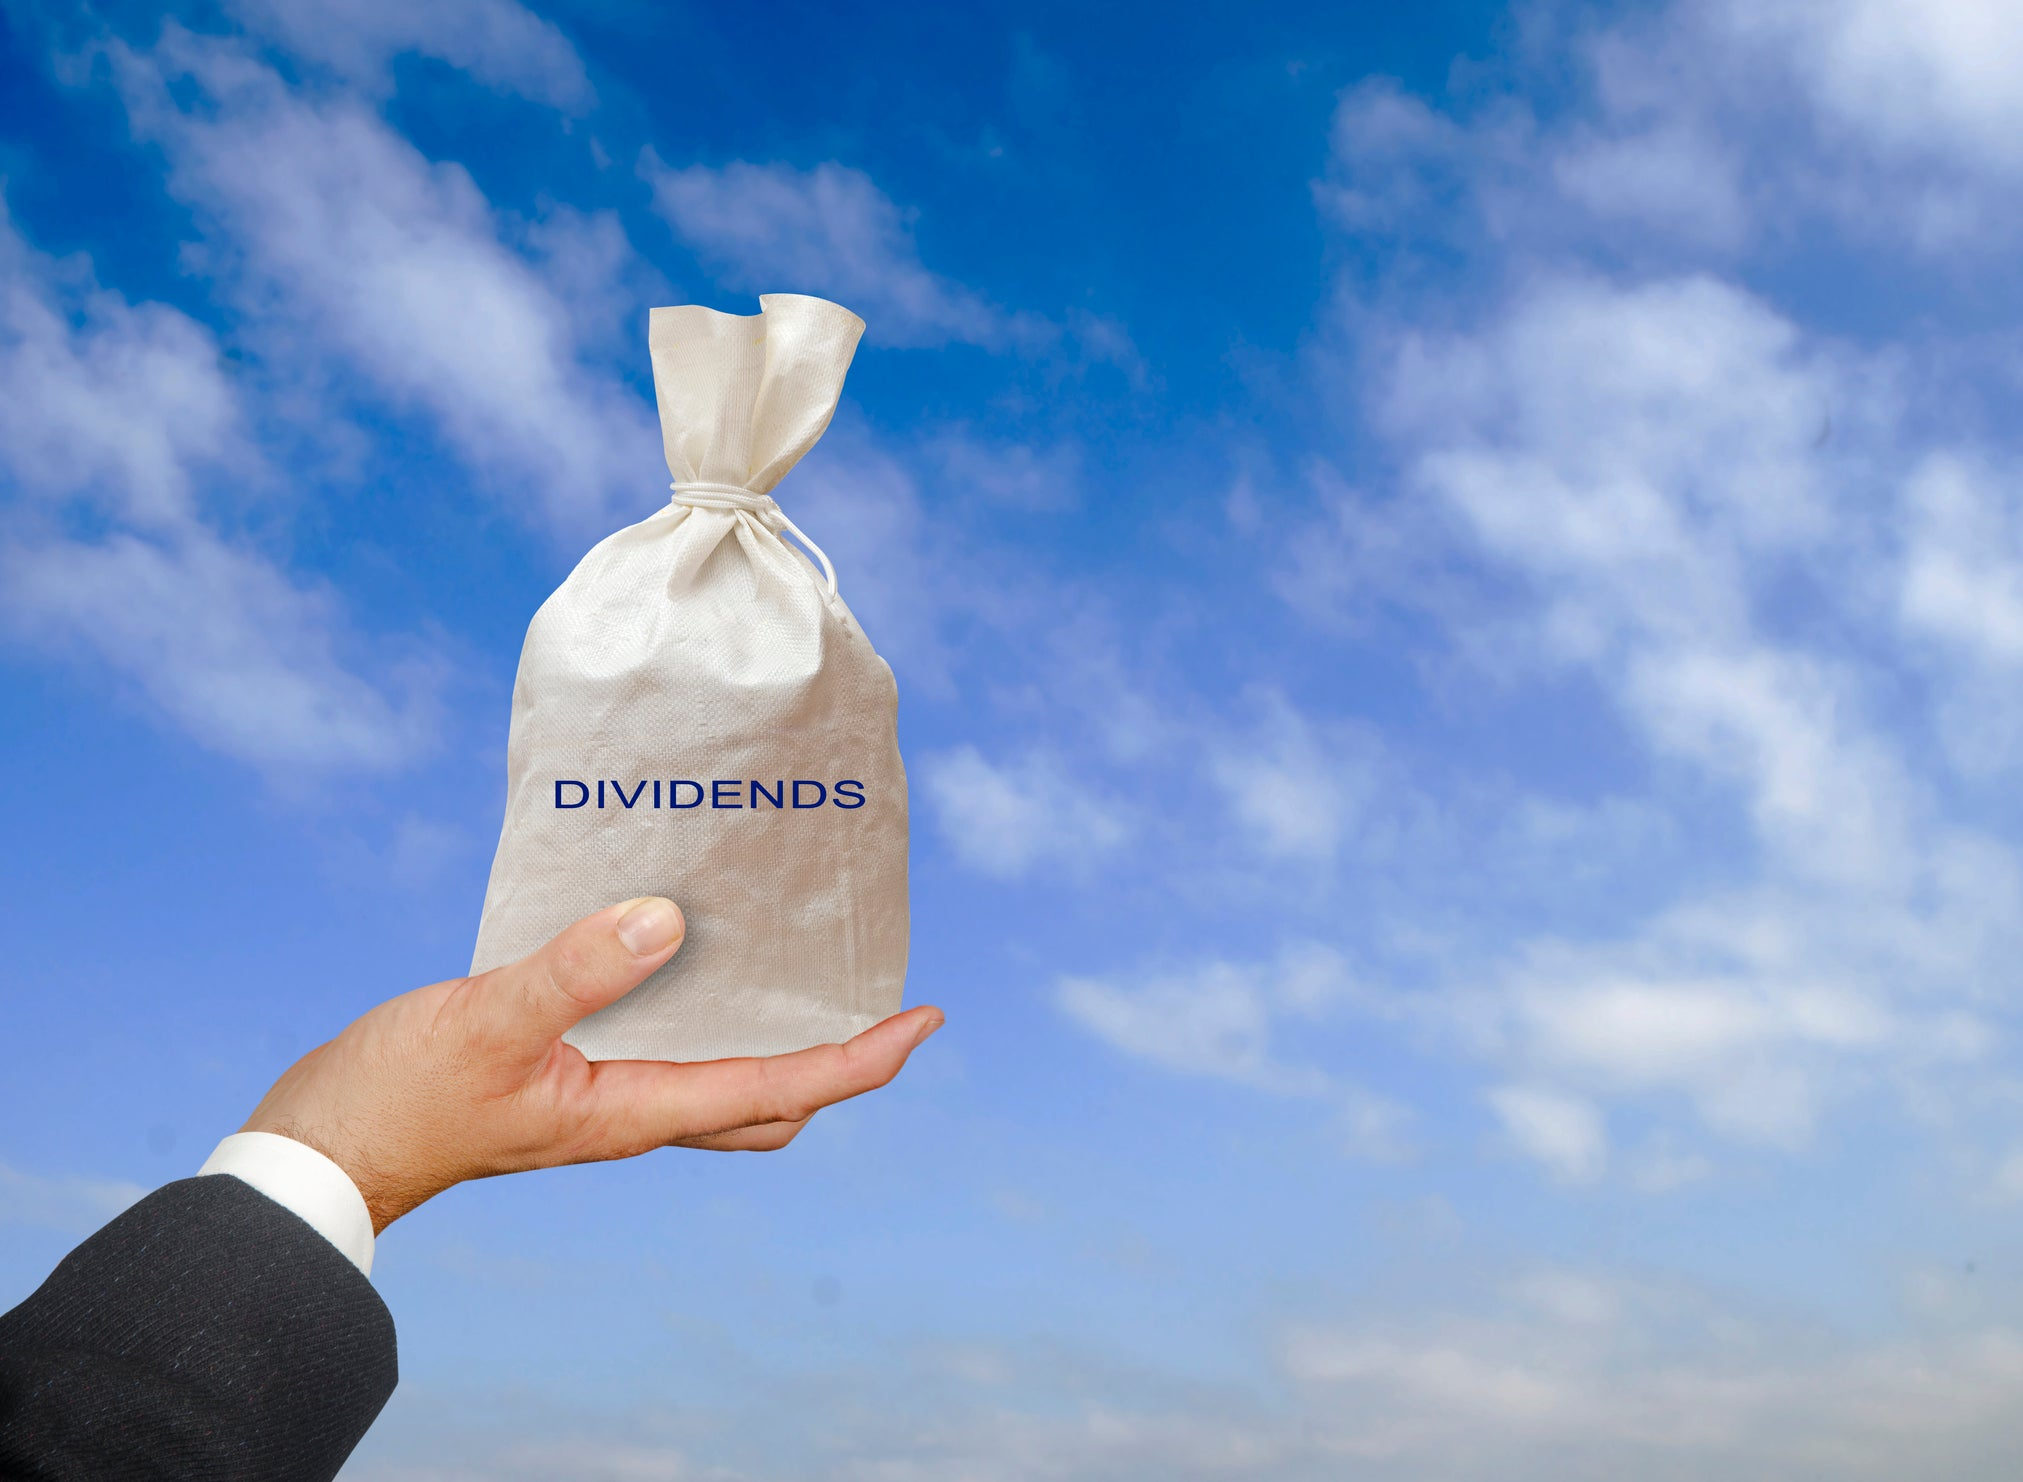 3 Hated Dividend Stocks to Buy Now | The Motley Fool